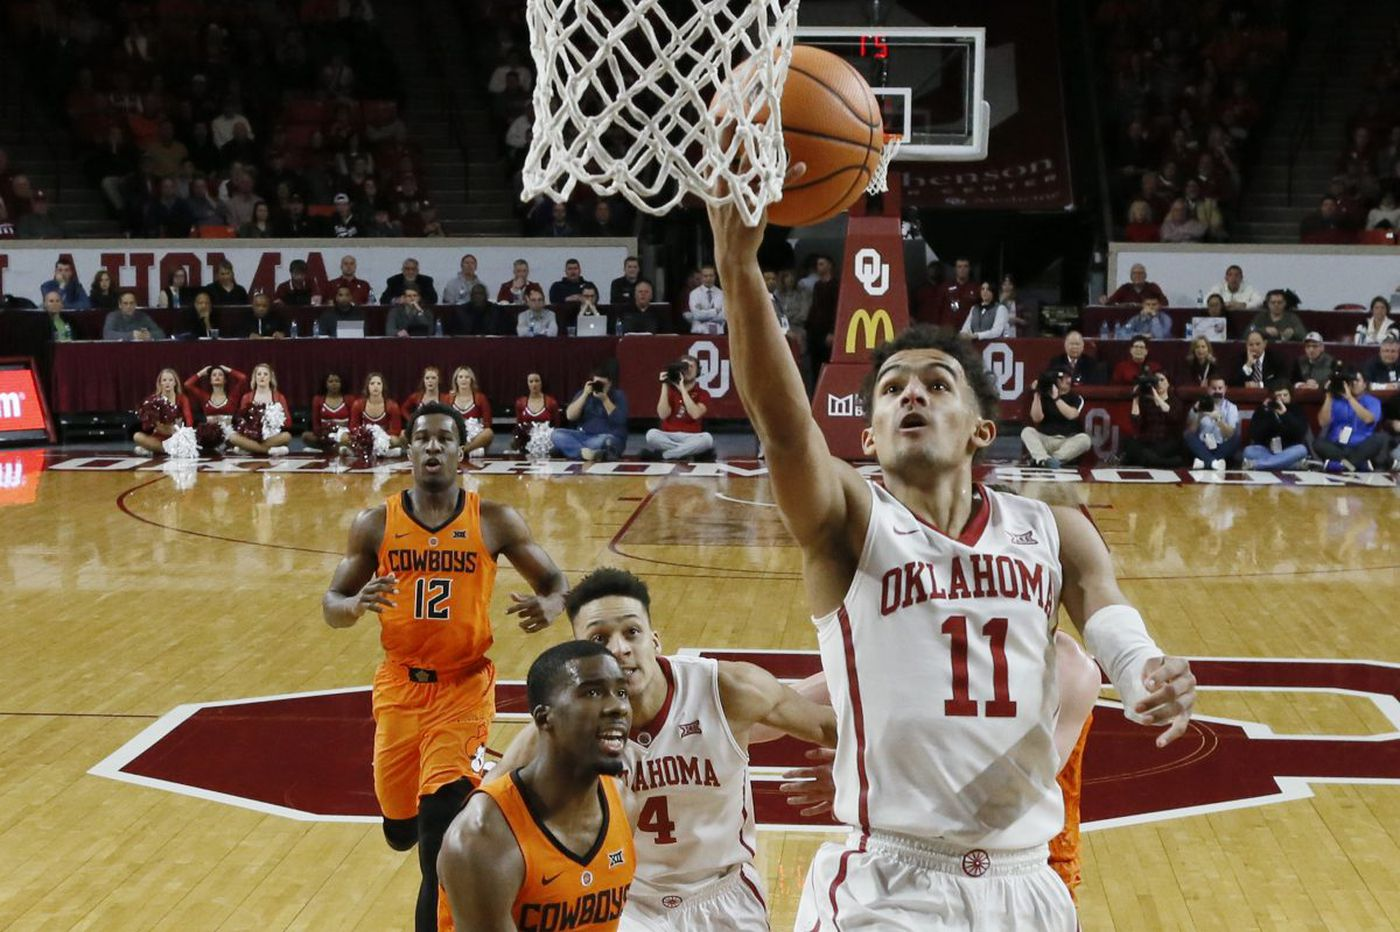 Oklahoma's Trae Young not performing like a freshman | College Basketball Topics